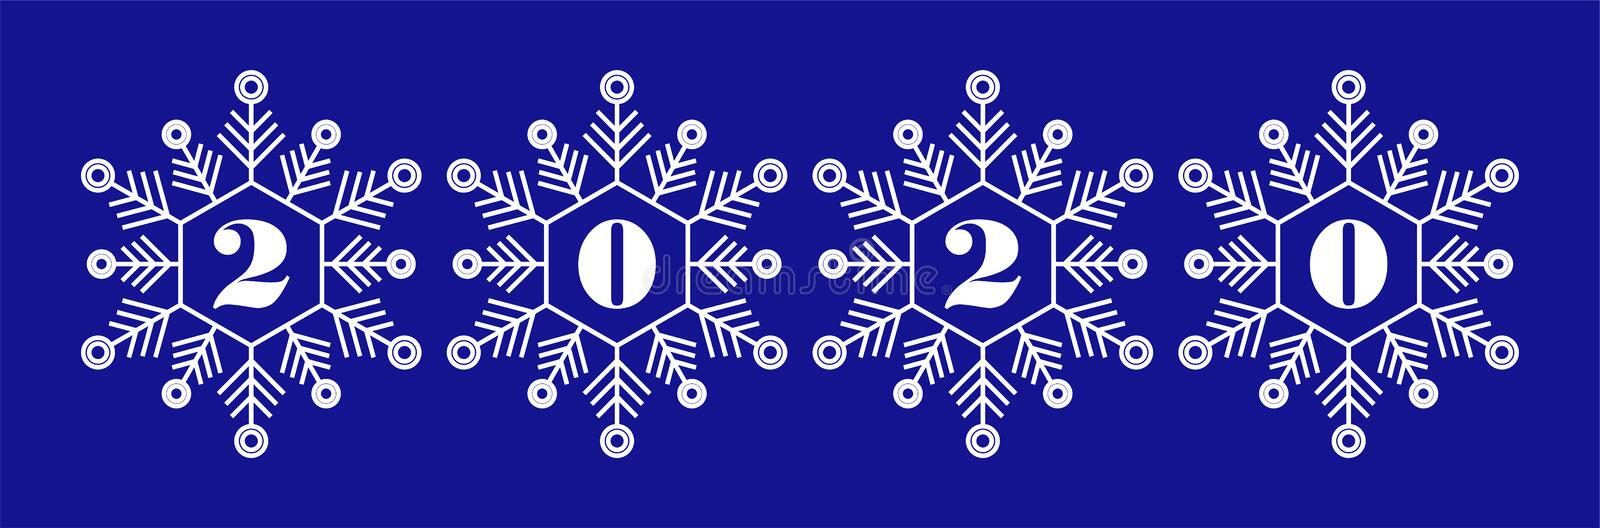 Icons set of 2020 numbers  on beautiful snowflakes, christmas theme for 2020 happy new year greetings design stock images